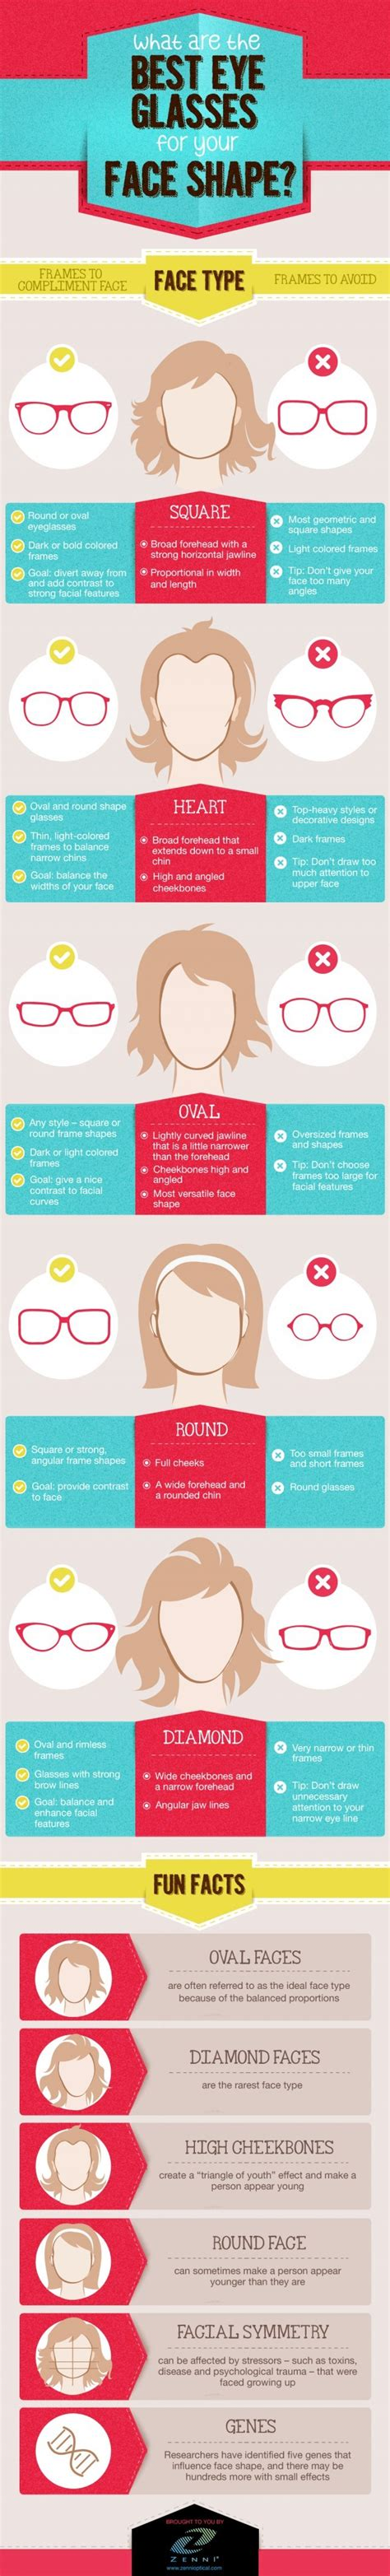 buy the right glasses for your face shape best which glasses suit your face shape